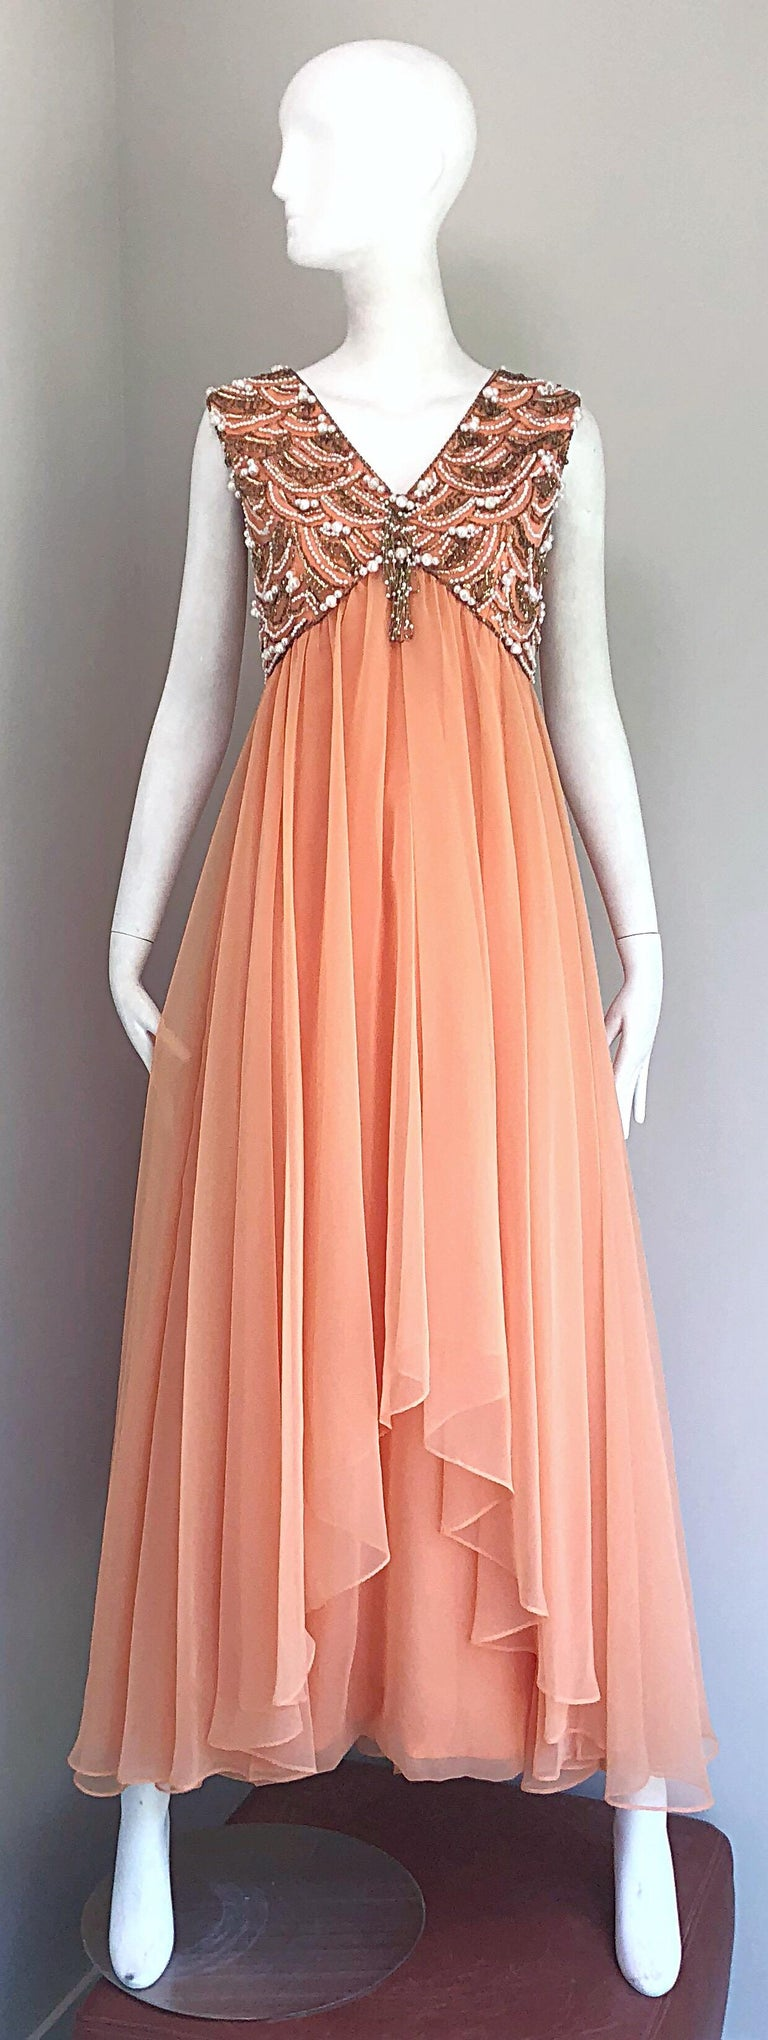 1960s Isabell Gerhart Sherbet Coral Demi Couture Beaded Chiffon 60s Gown Dress For Sale 10